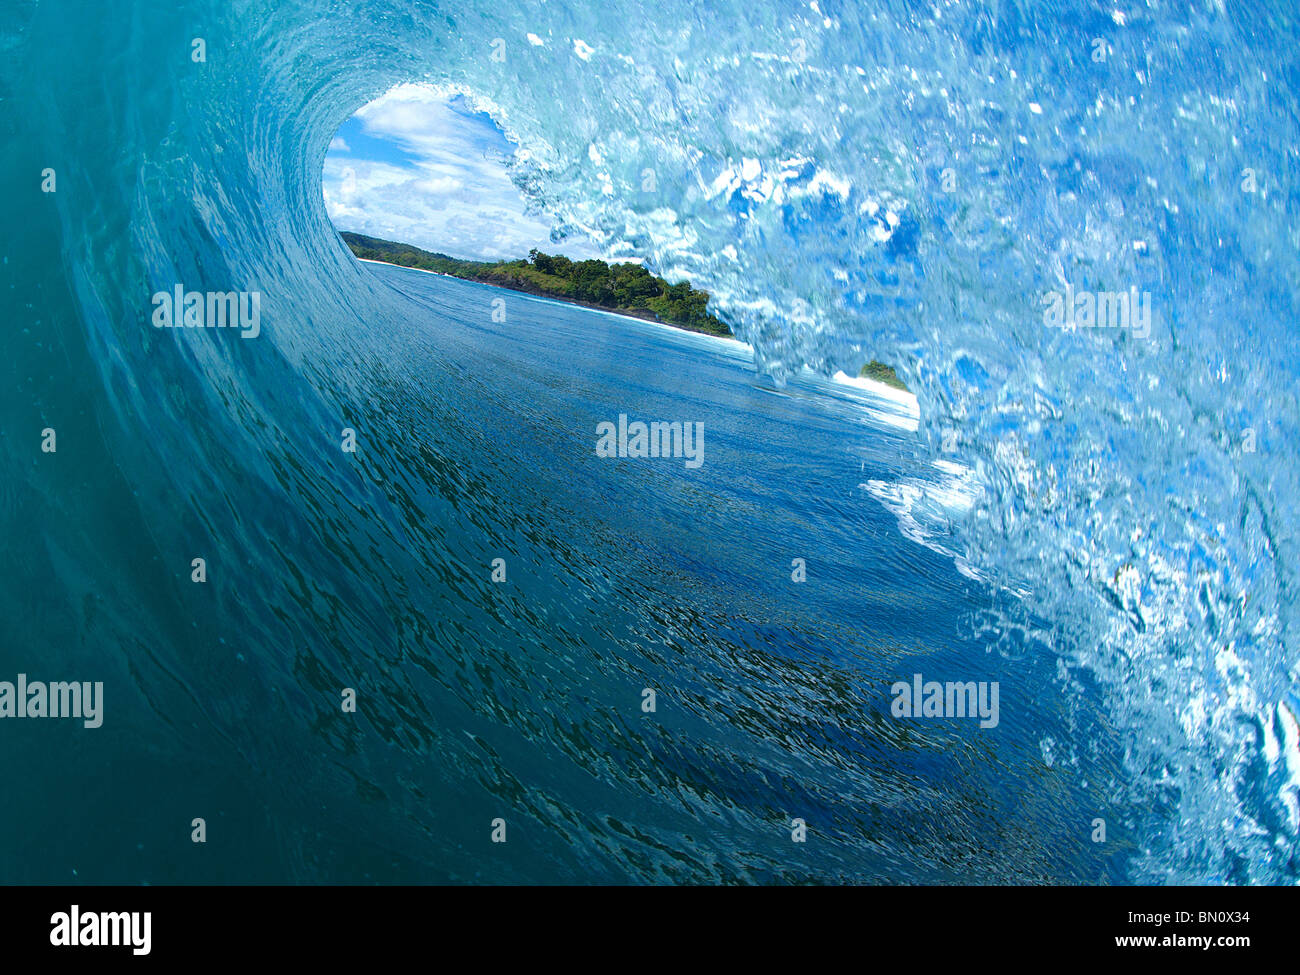 In the tube of a wave - Stock Image